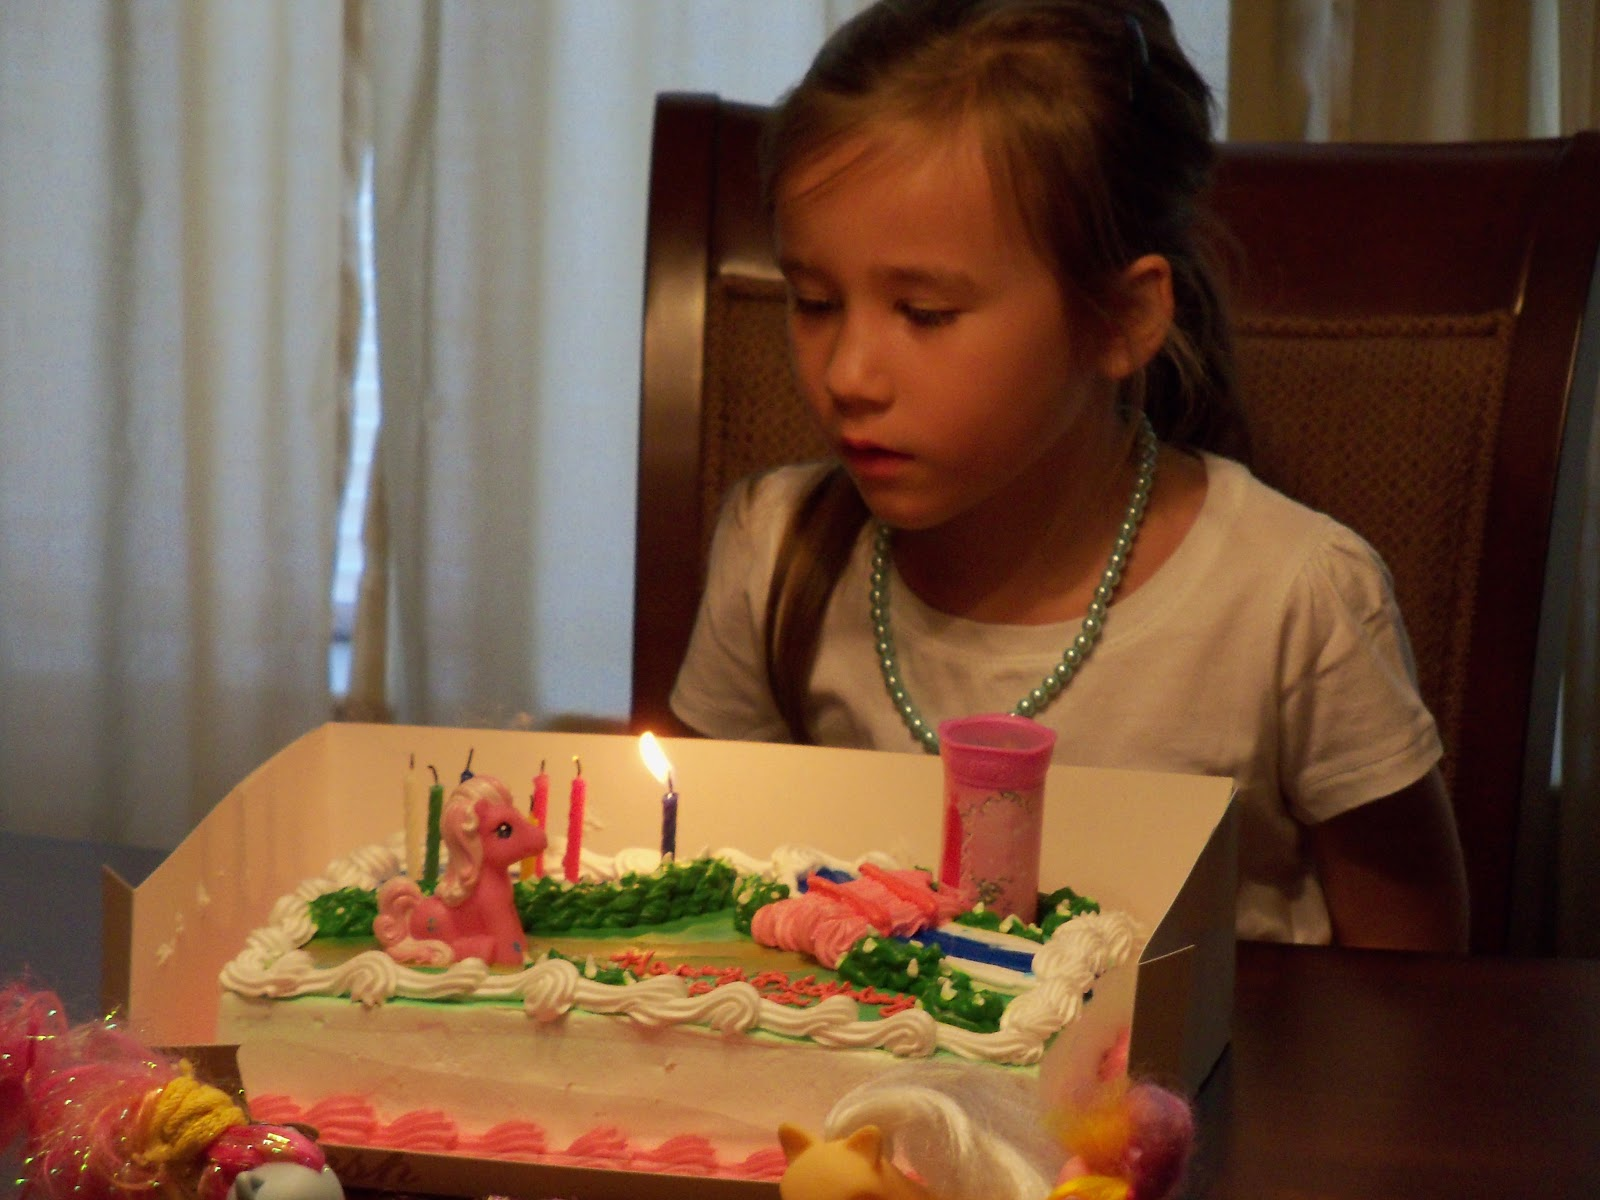 Corinas Birthday Party 2011 - 100_6935.JPG